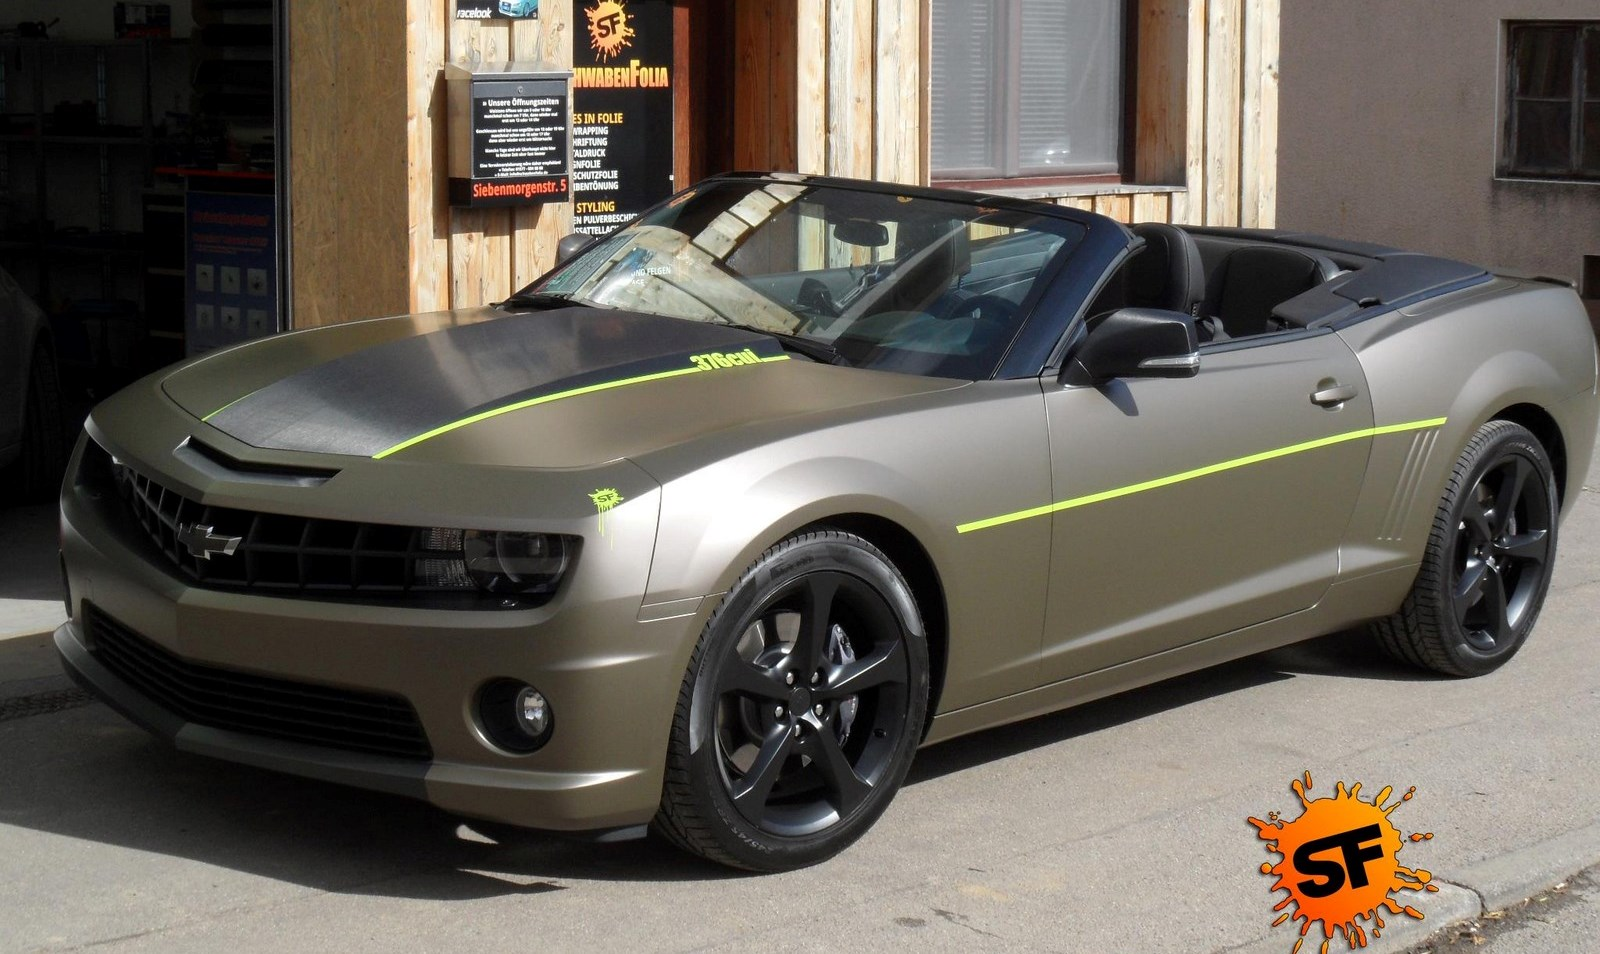 Camaro Ss Cabrio Wrapped In Matte Urban Taupe By Schwabenfolia Gtspirit